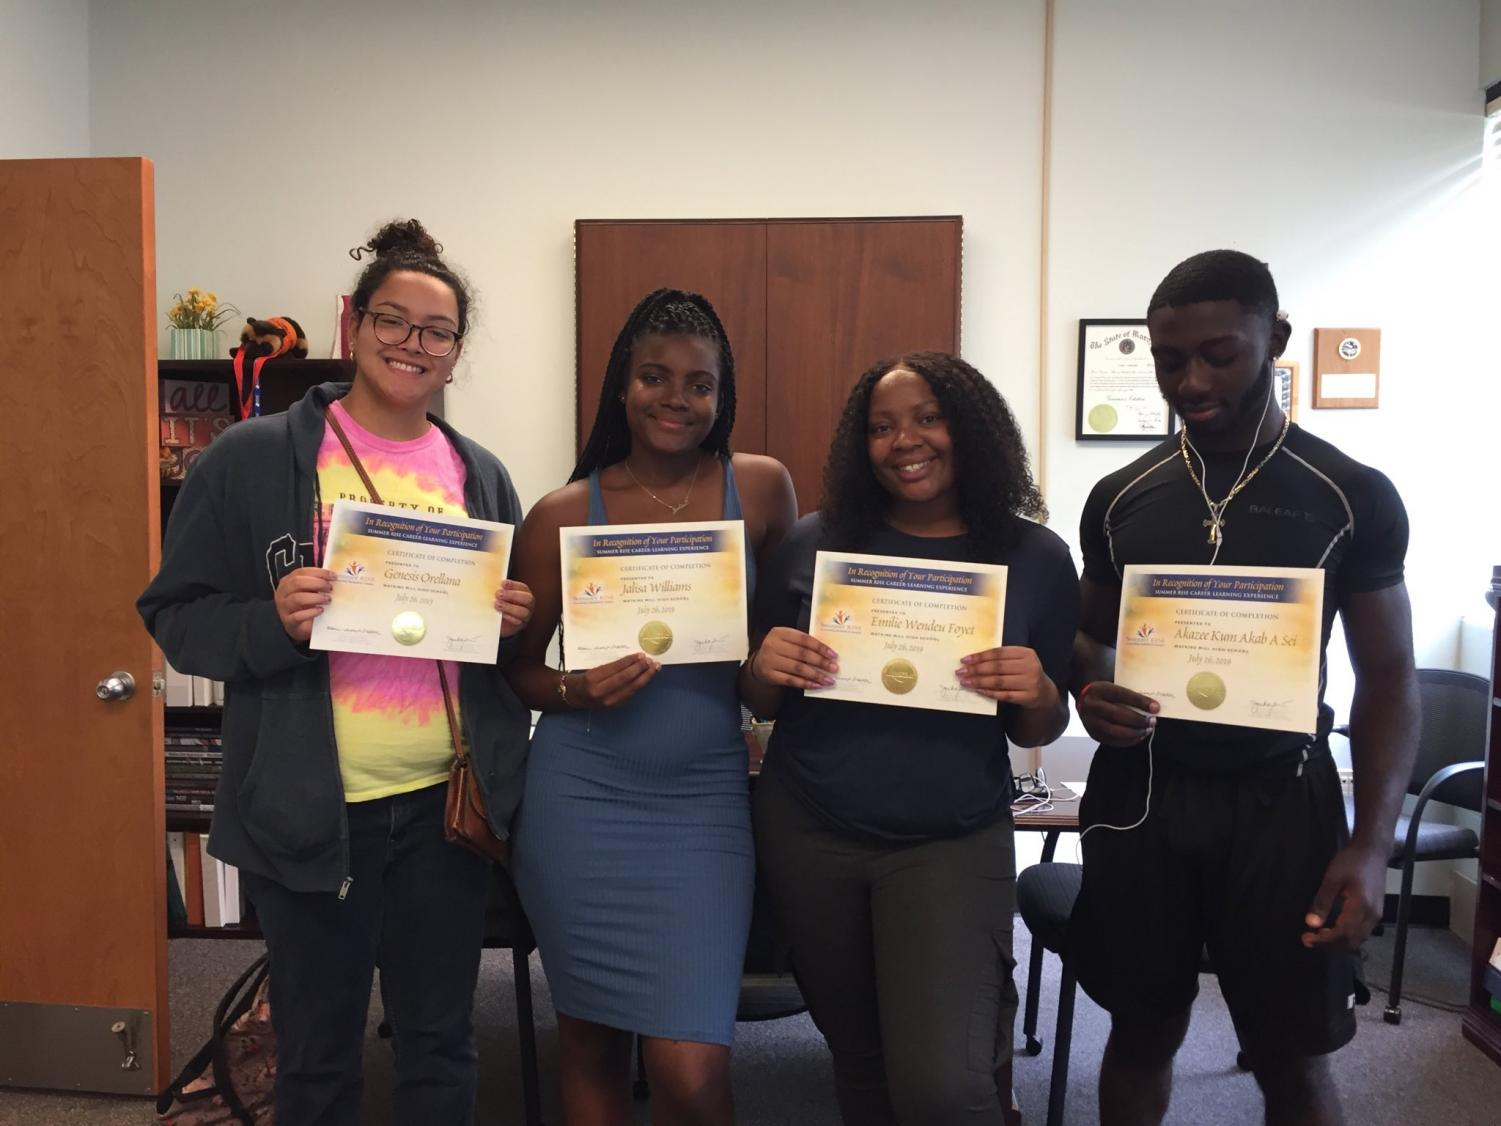 Students holding up their Summer RISE Program certificate after completing the program.